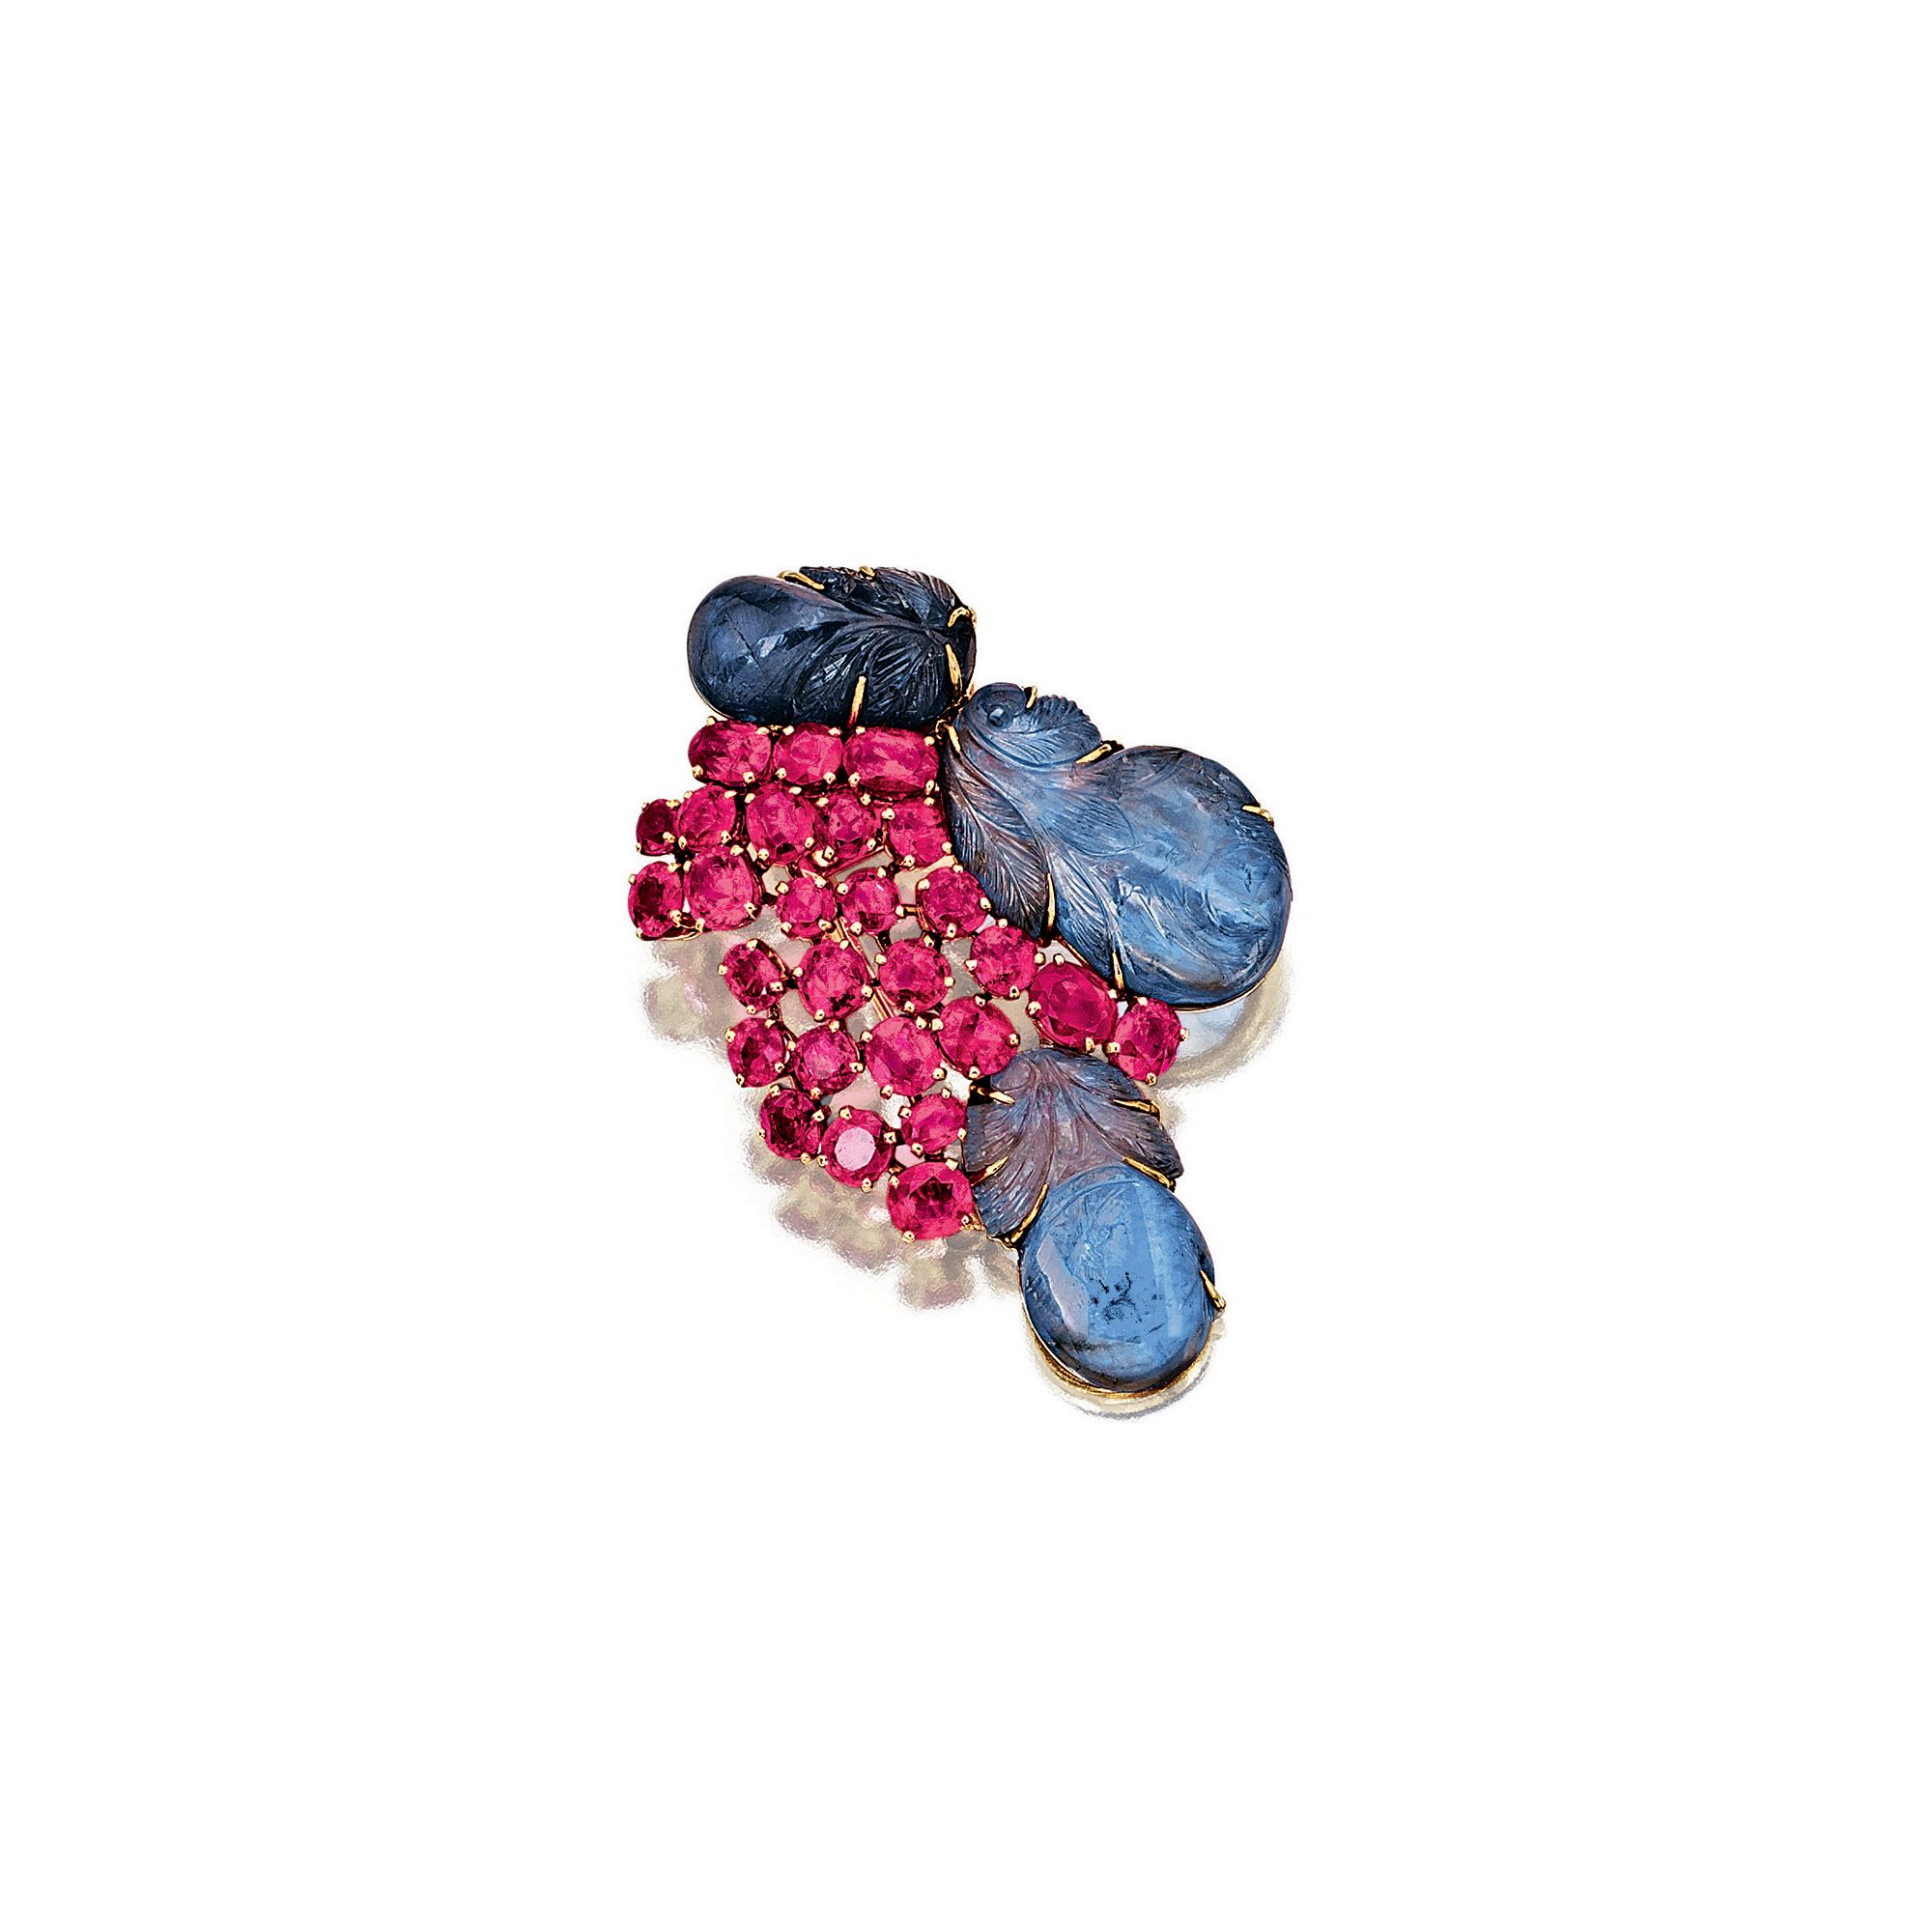 Sapphire and ruby brooch, Suzanne Belperron, 1950s| Sotheby's